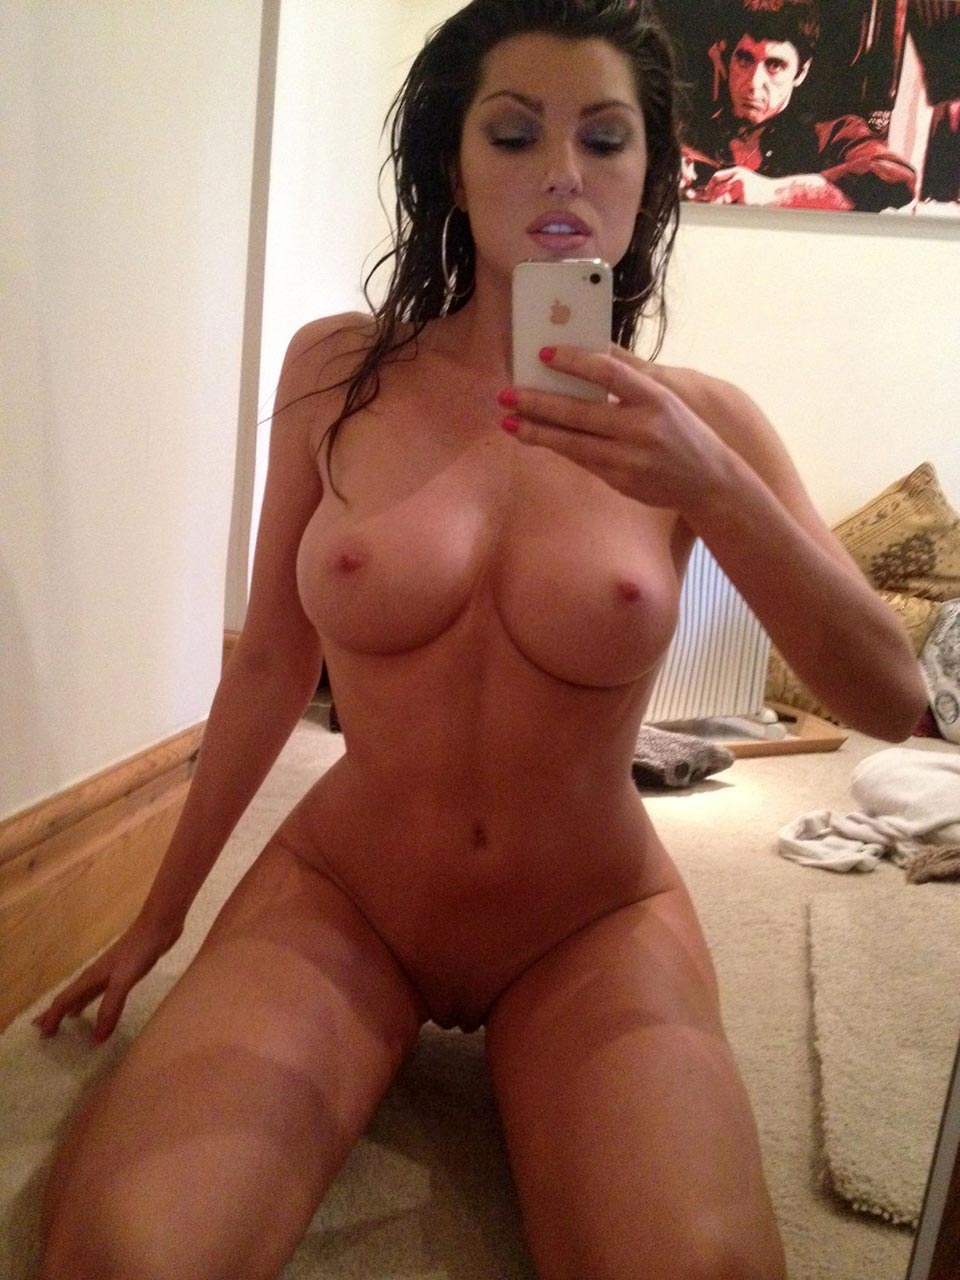 British Actress Louise Cliffe Private Nudes Online Again